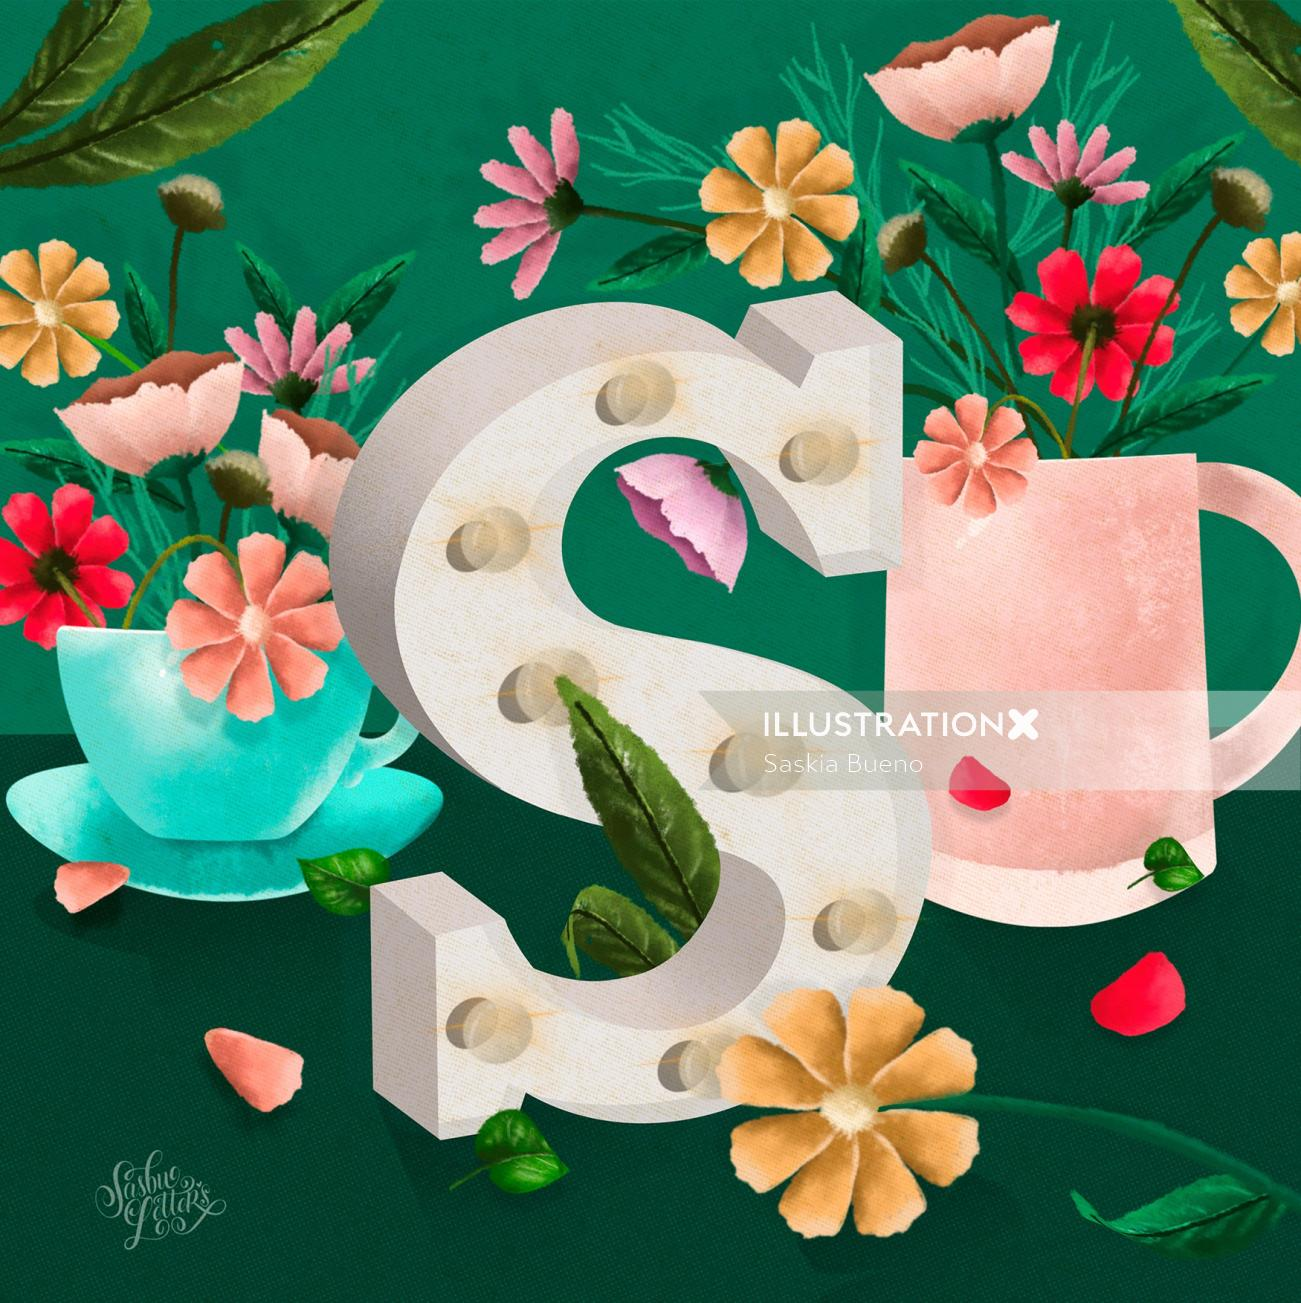 Calligraphy design of letter s